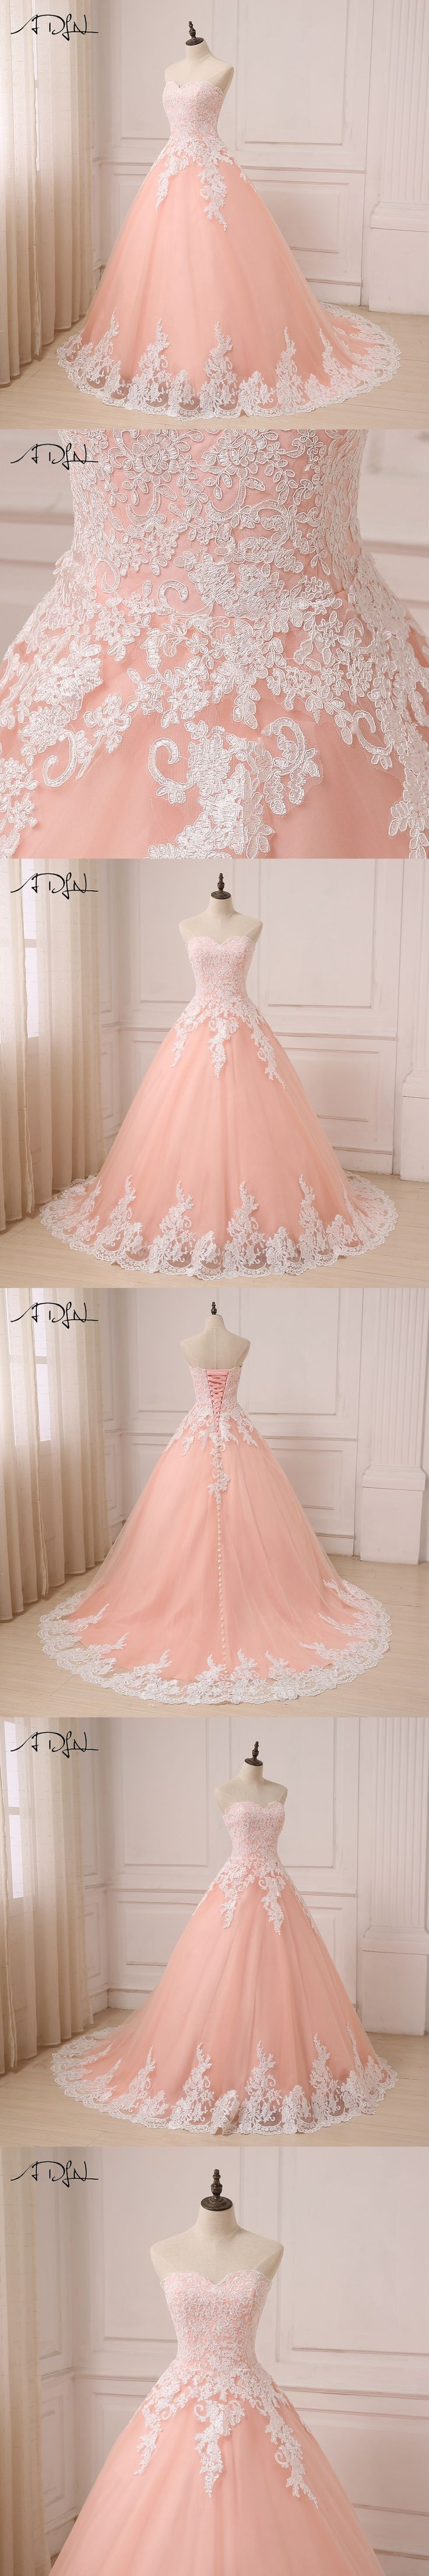 ADLN 2017 Color Wedding Dresses Coral Sweetheart Sleeveless Tulle ...